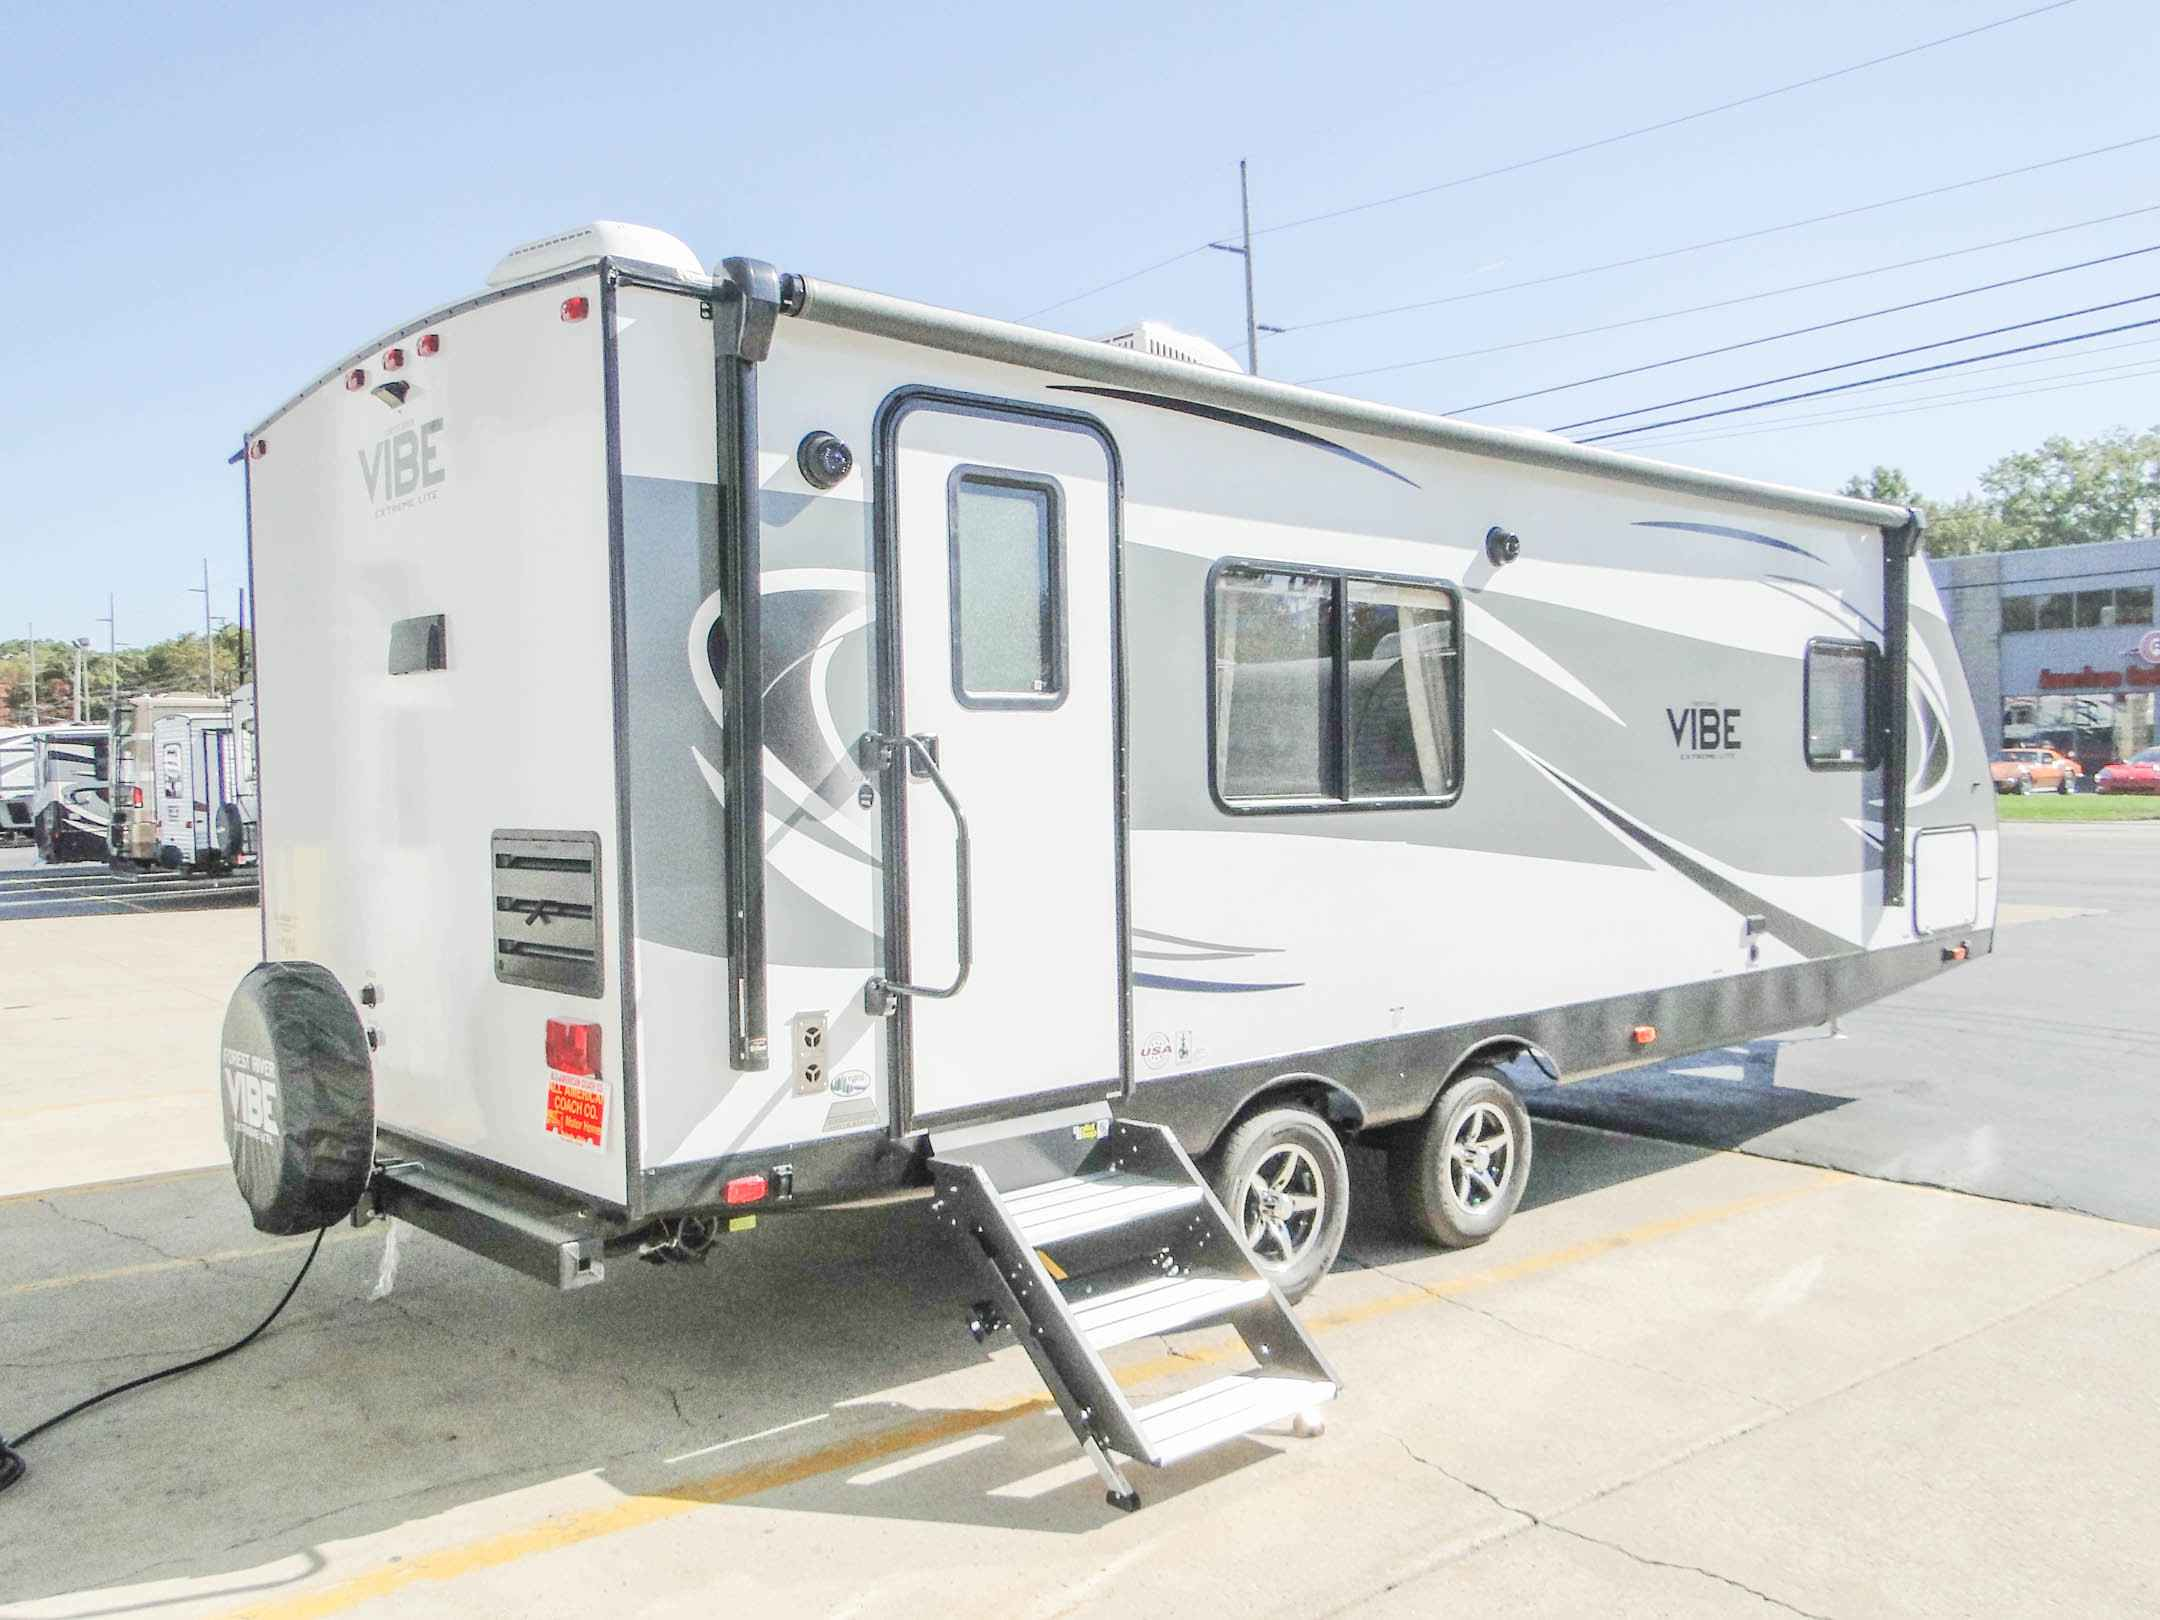 travel trailers with rear kitchen rustic table and chairs 2018 new forest river vibe extreme lite 258rks